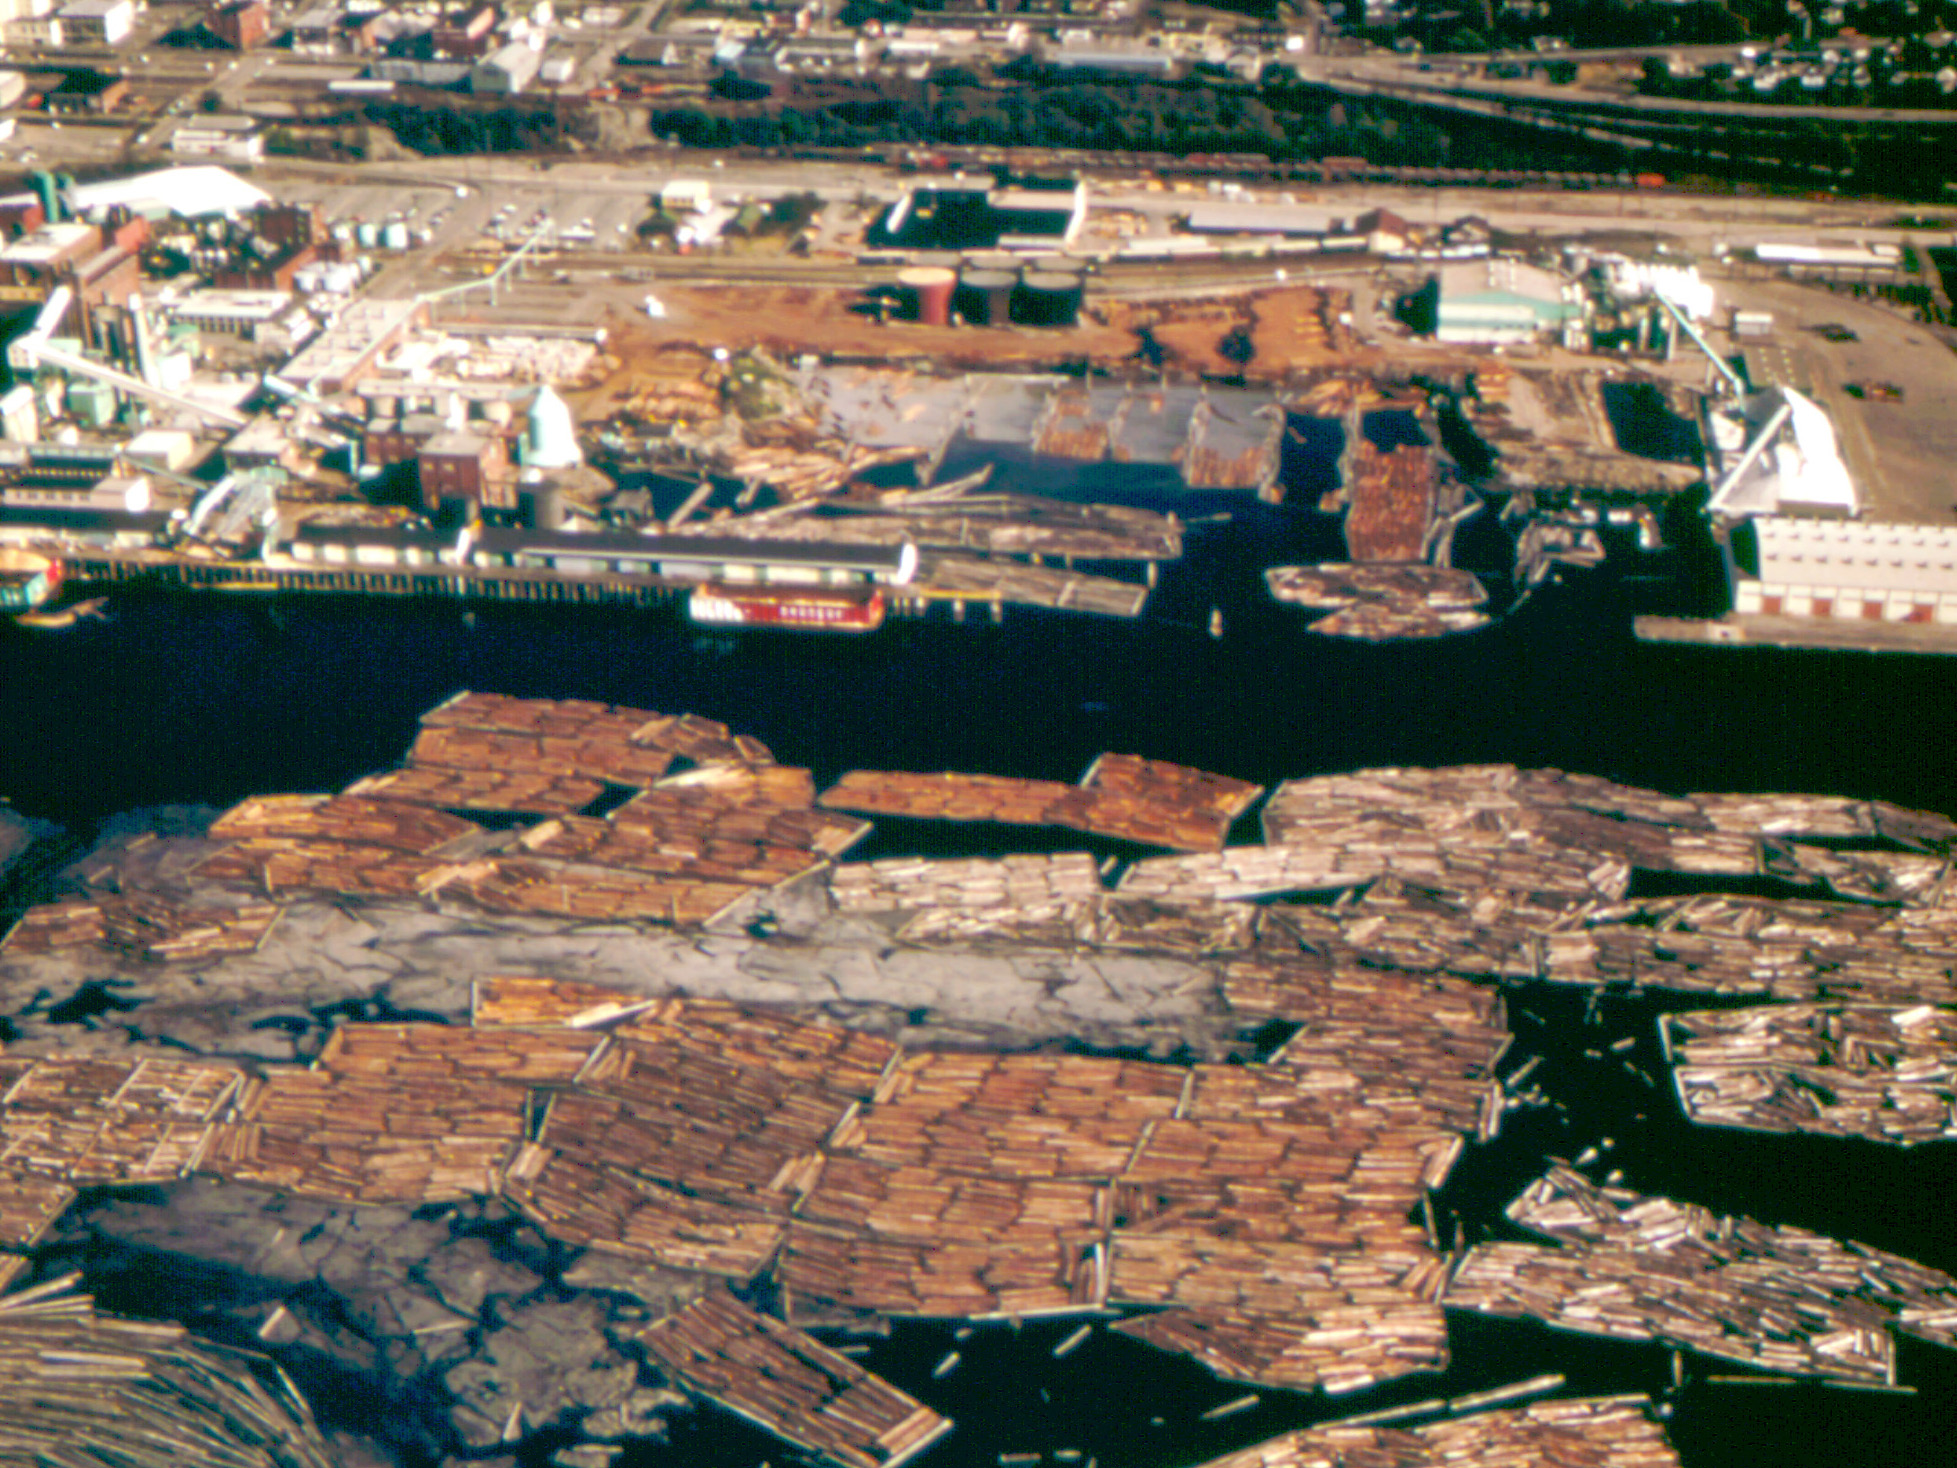 An aerial view of Bellingham Bay showing industry on the shore and thousands of logs floating in the bay.